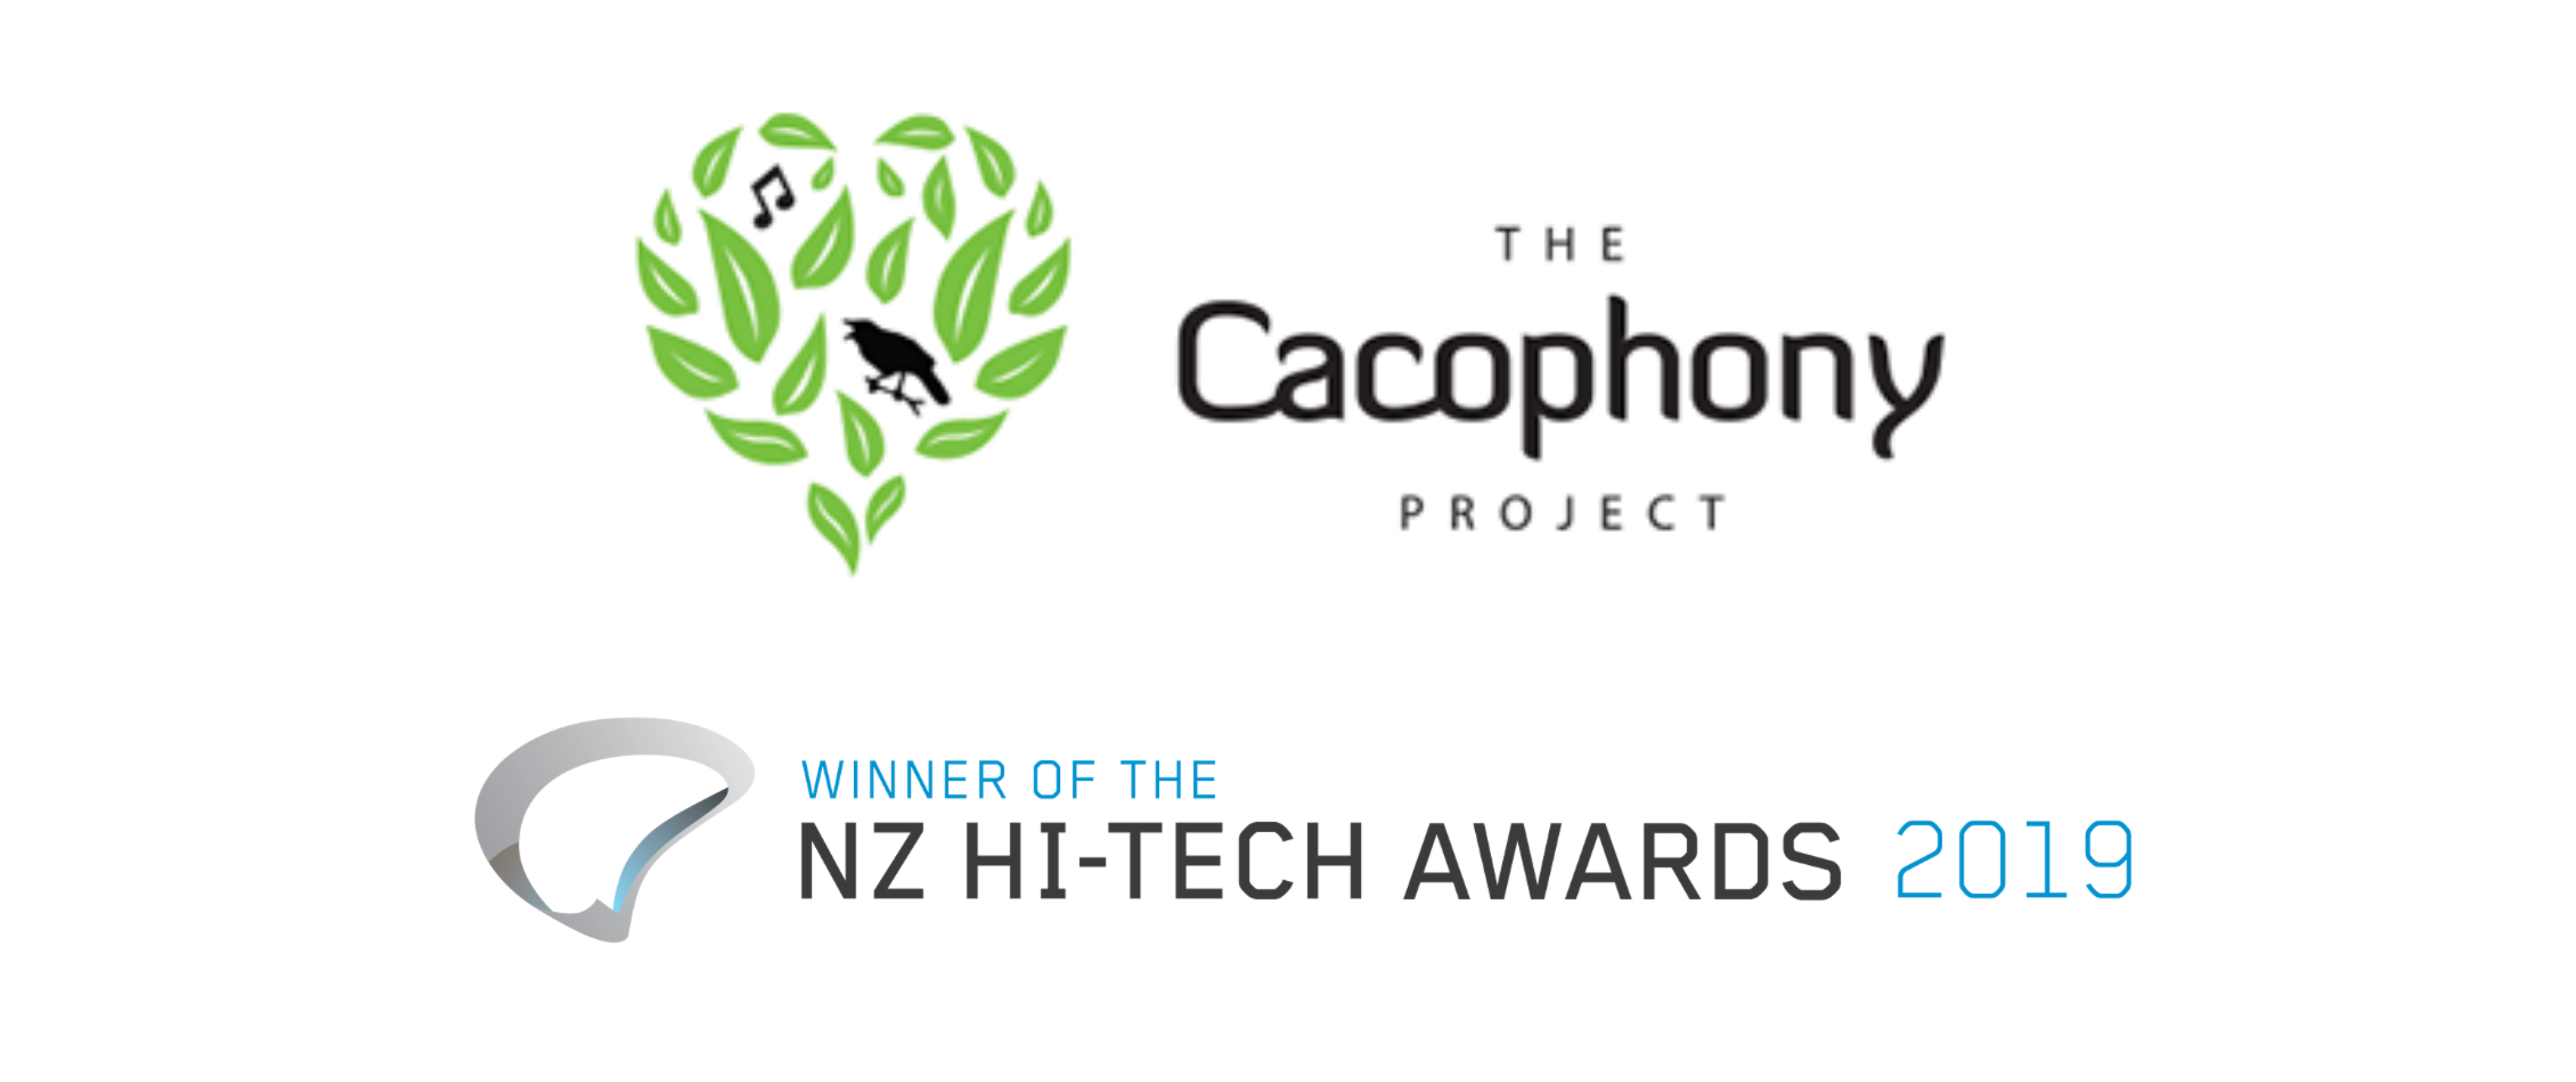 The Cacophony Project Wins 2019 New Zealand Hi-Tech Award-1